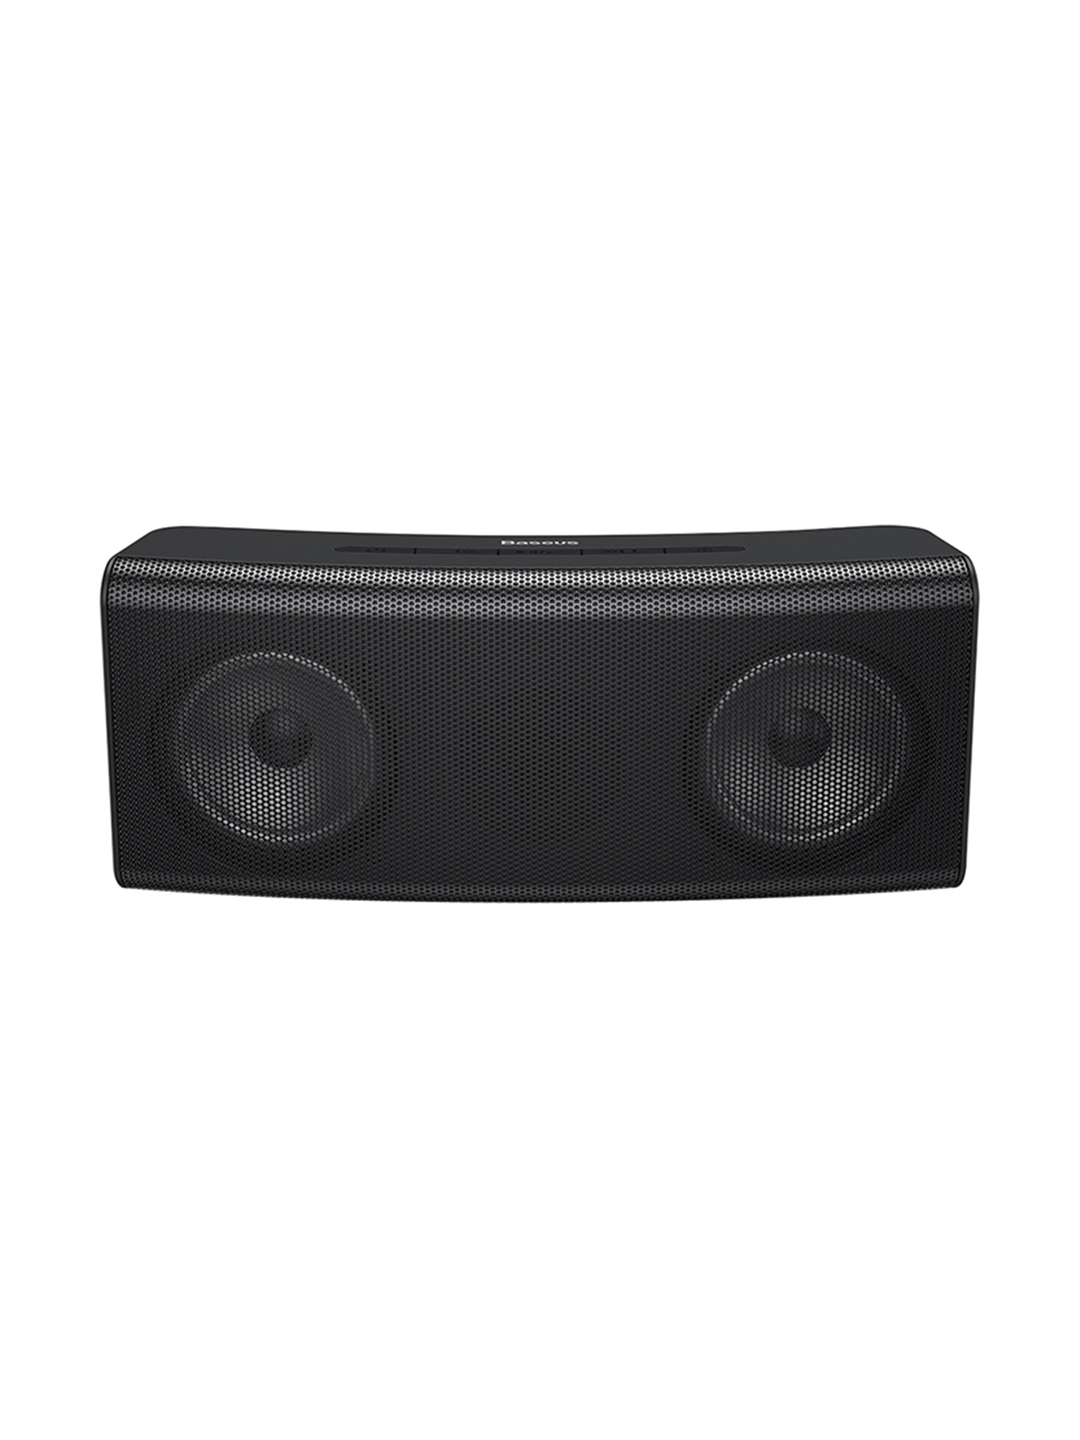 BASEUS ENCOK WIRELESS SPEAKER E08 WITH BT5.0